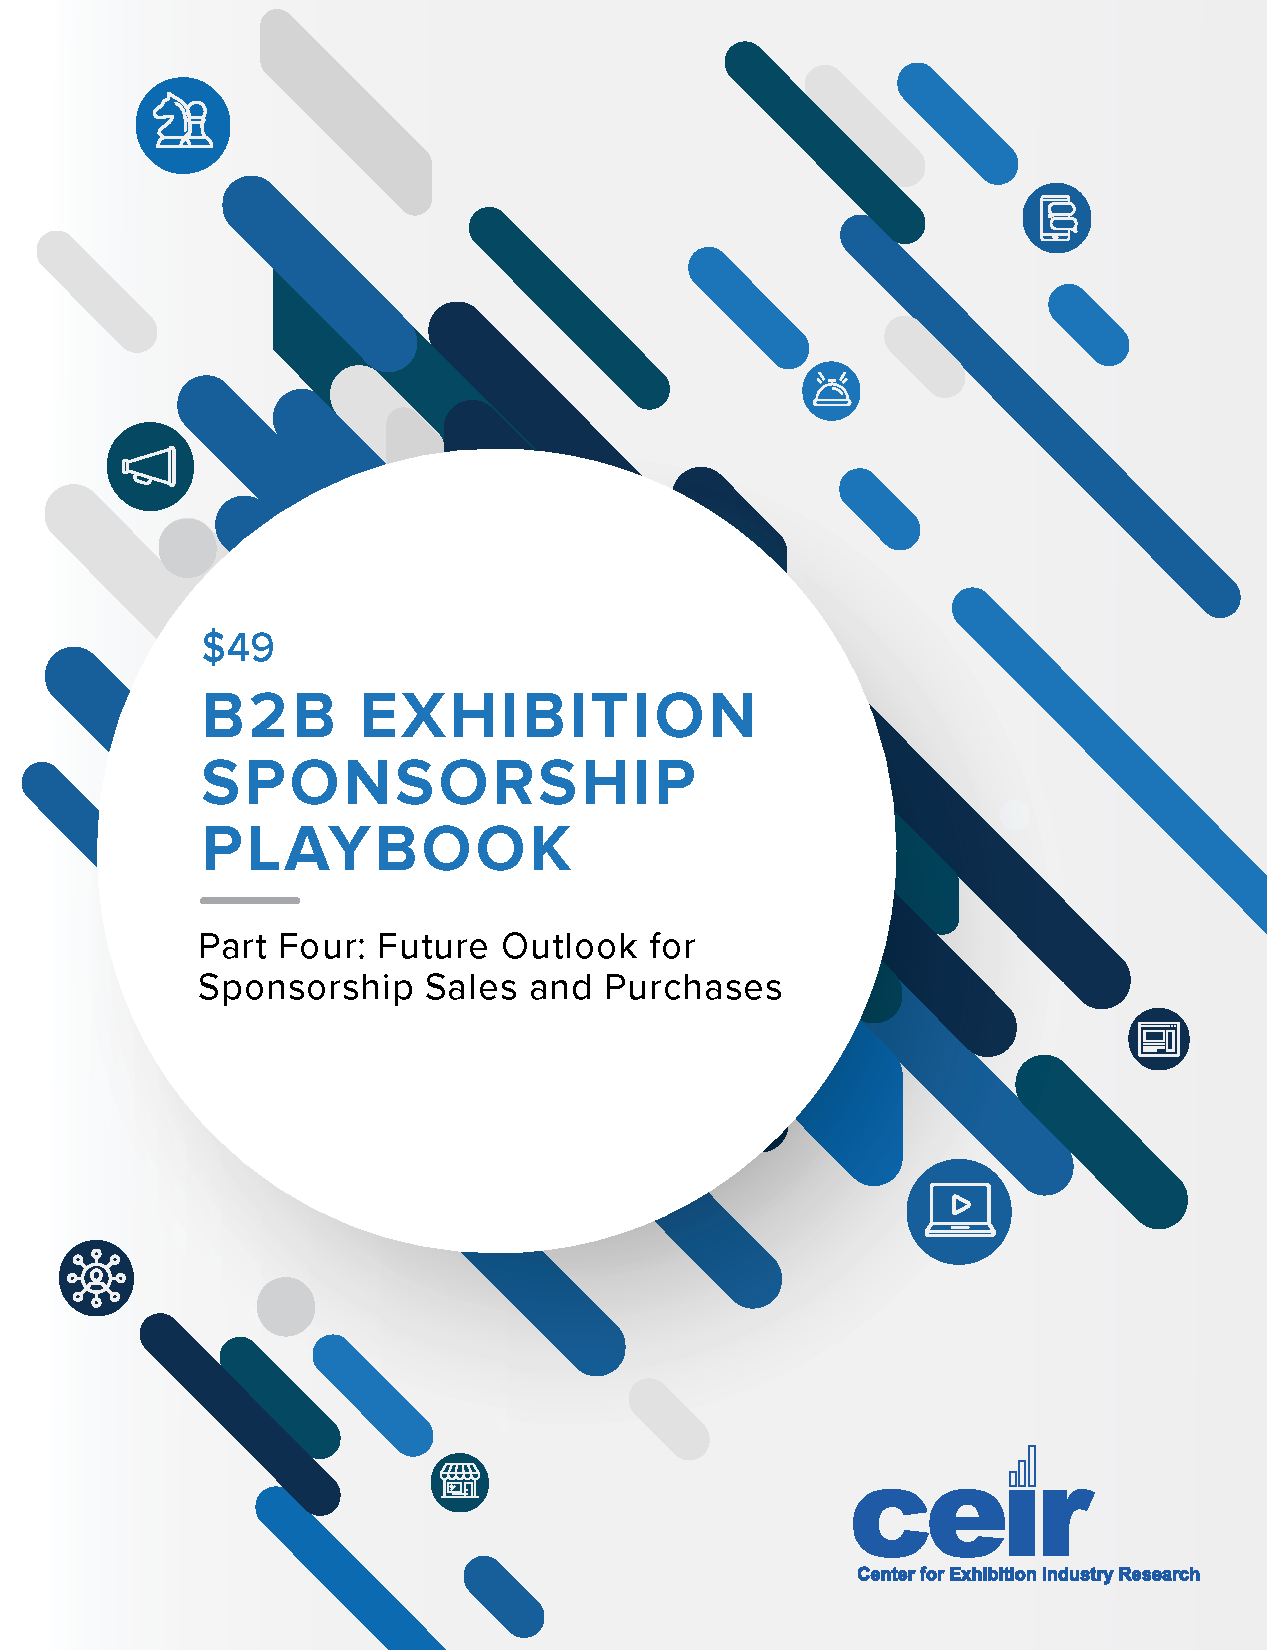 2019 B2B Exhibition Sponsorship Playbook: Part 4 cover image